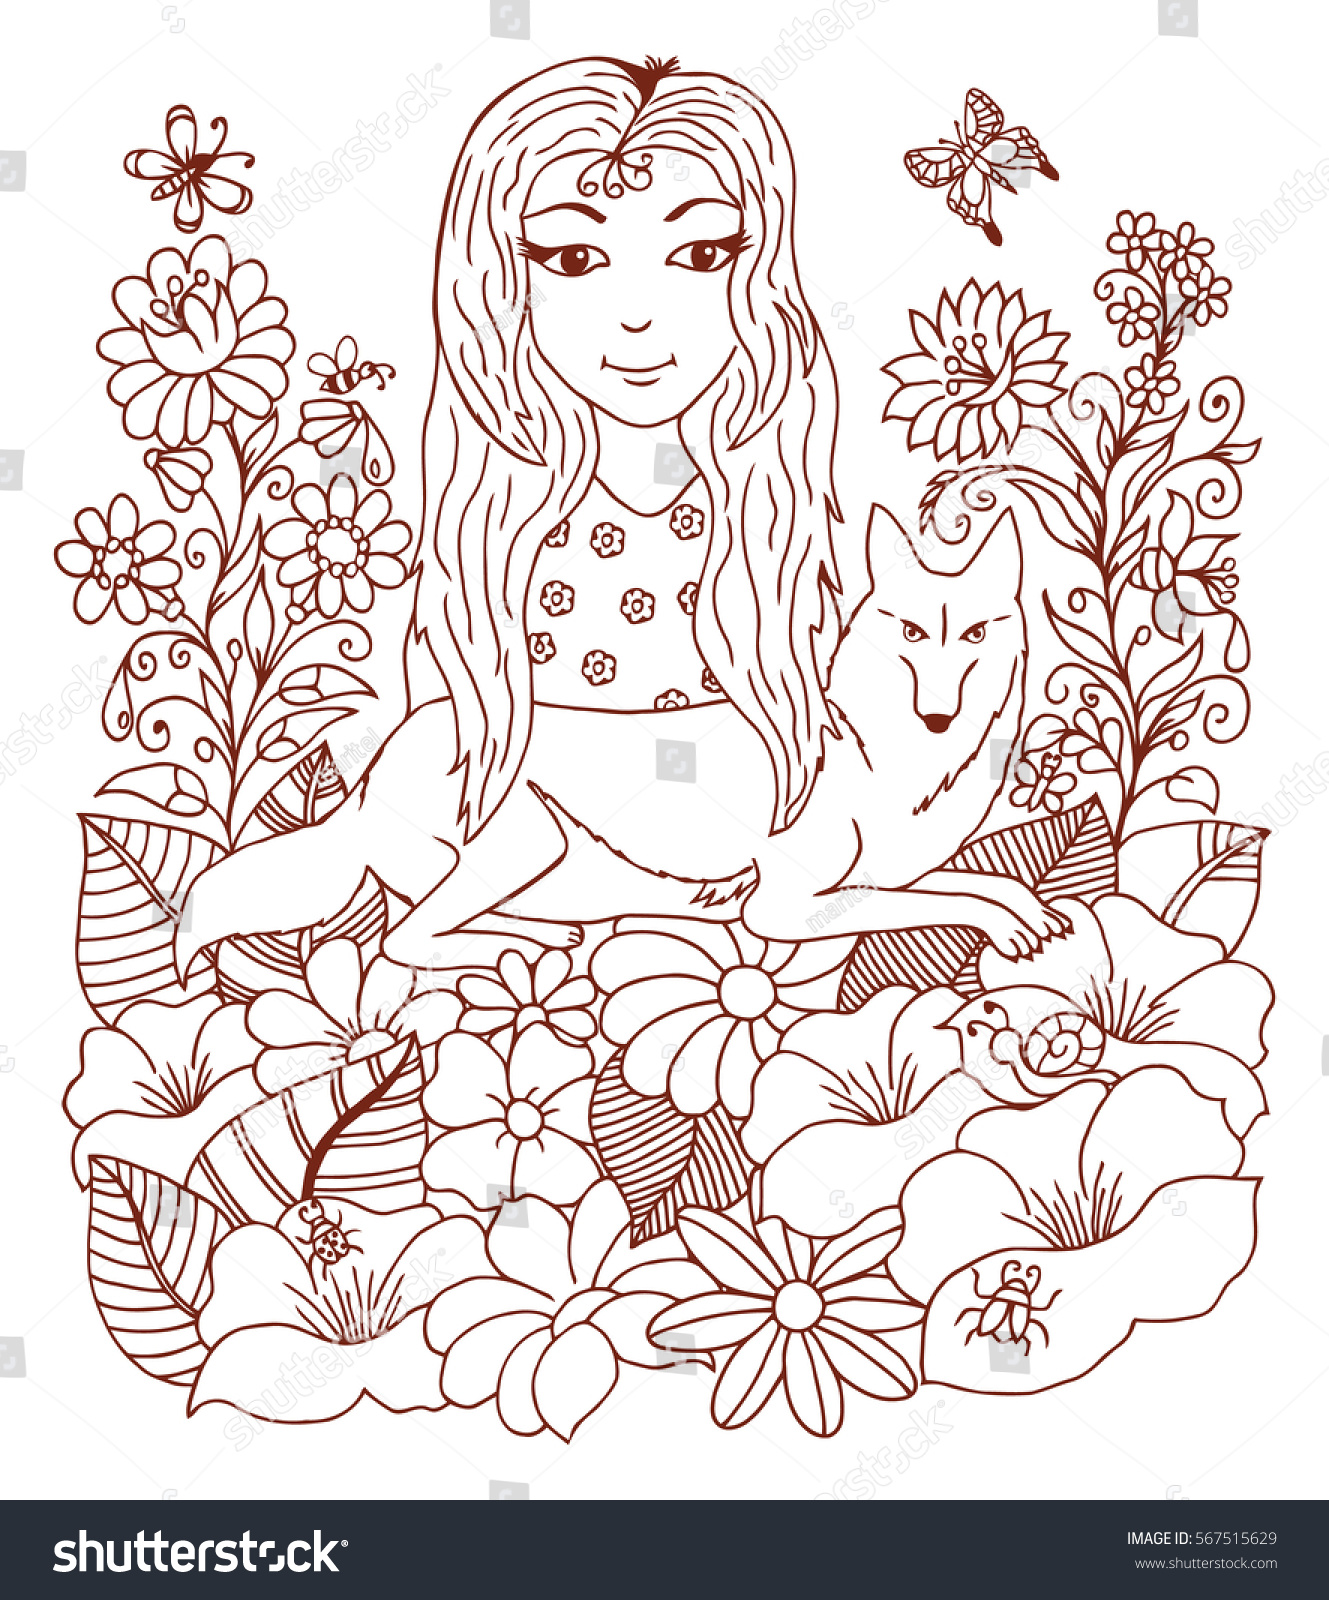 Do anti stress colouring books work - Vector Illustration Girl With A Wolf Surrounded By Flowers Work Made By Hand Book